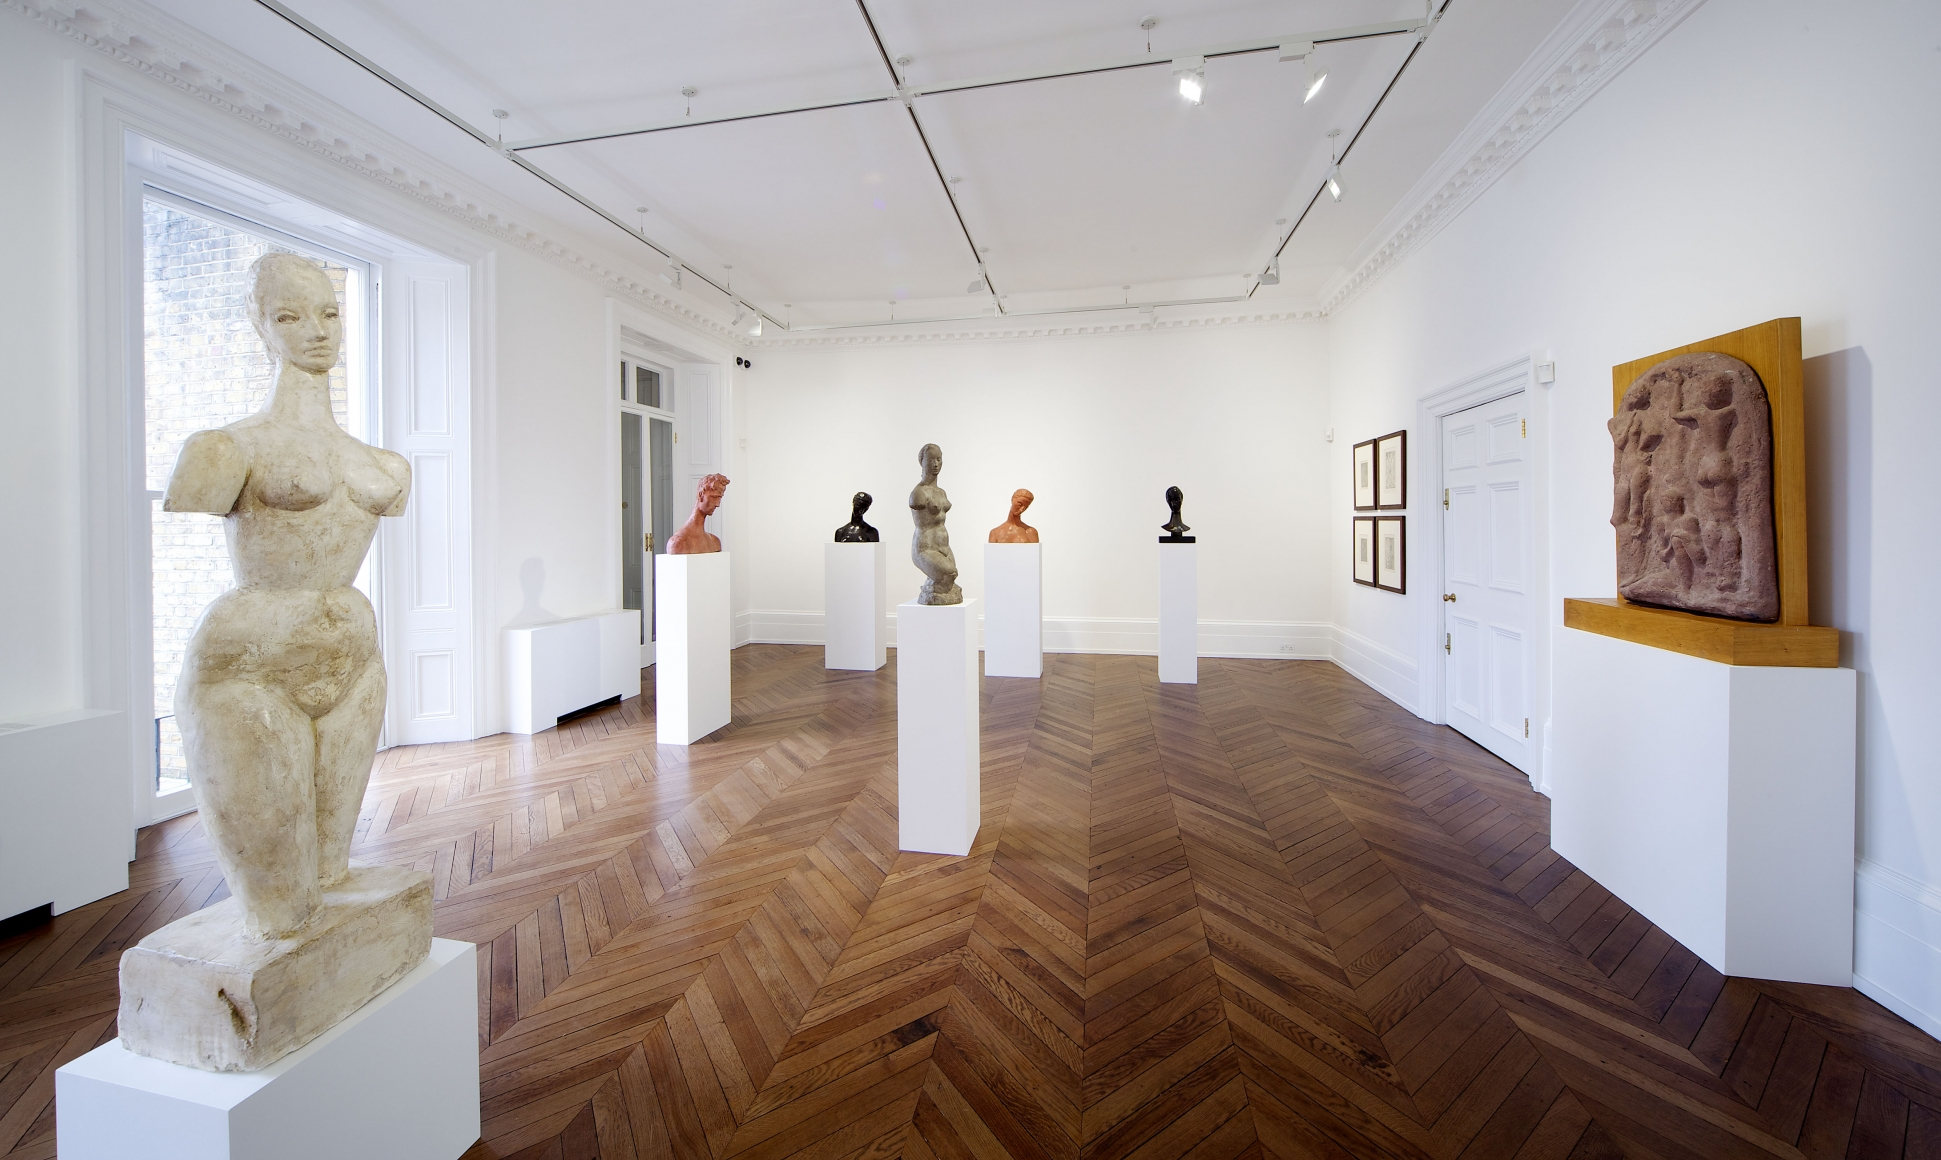 WILHELM LEHMBRUCK Sculpture and Works on Paper 21 March through 25 May 2013 MAYFAIR, LONDON, Installation View 10